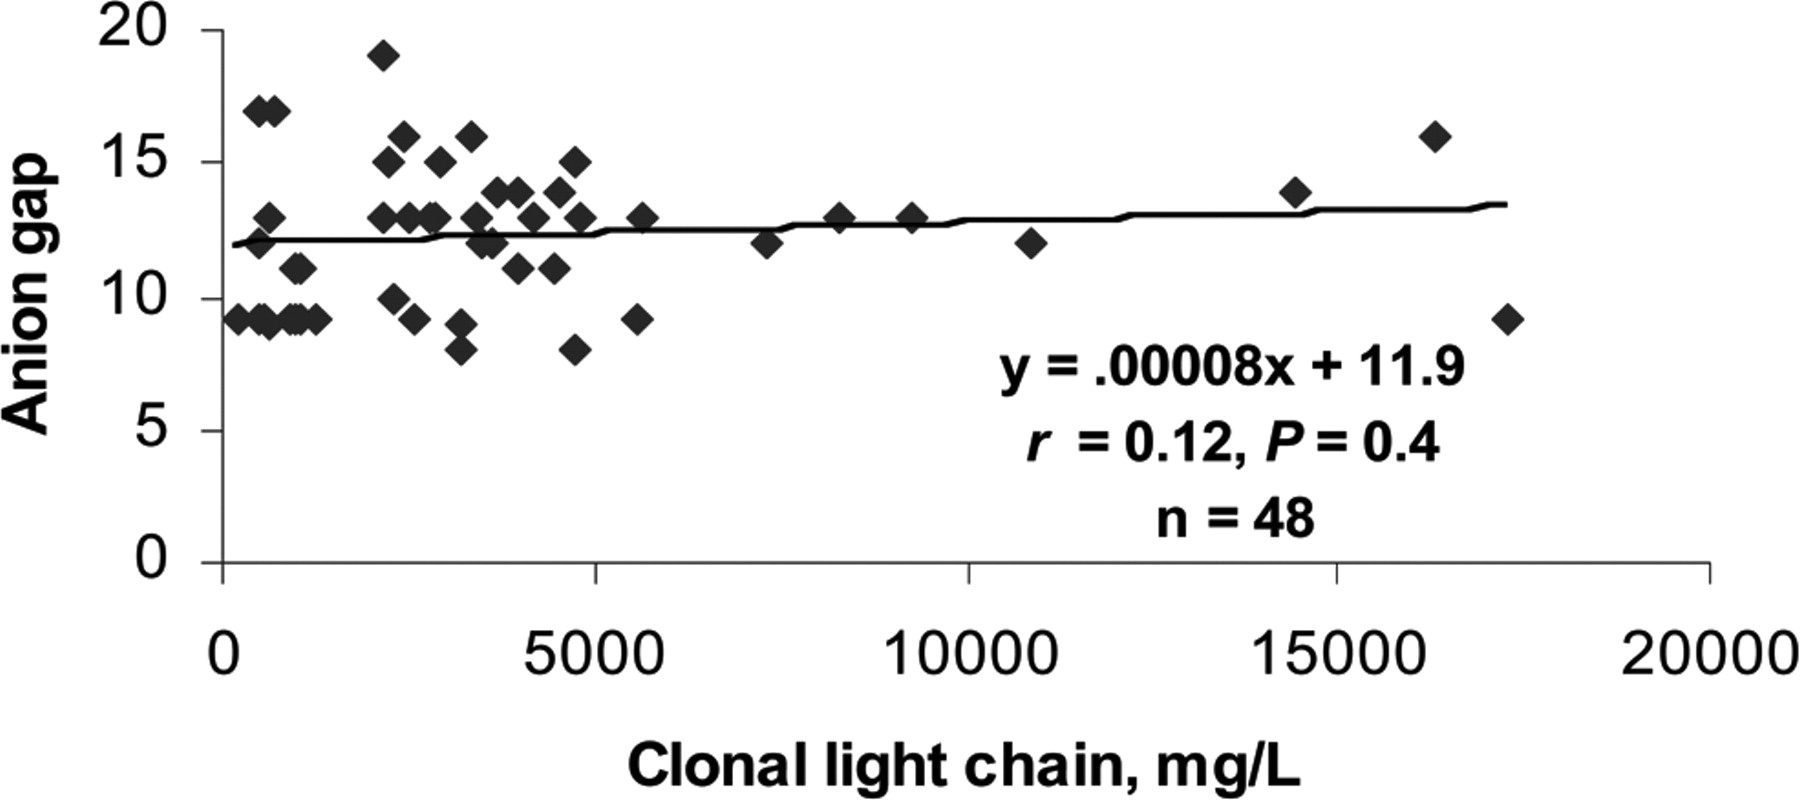 The Anion Gap and Routine Serum Protein Measurements in